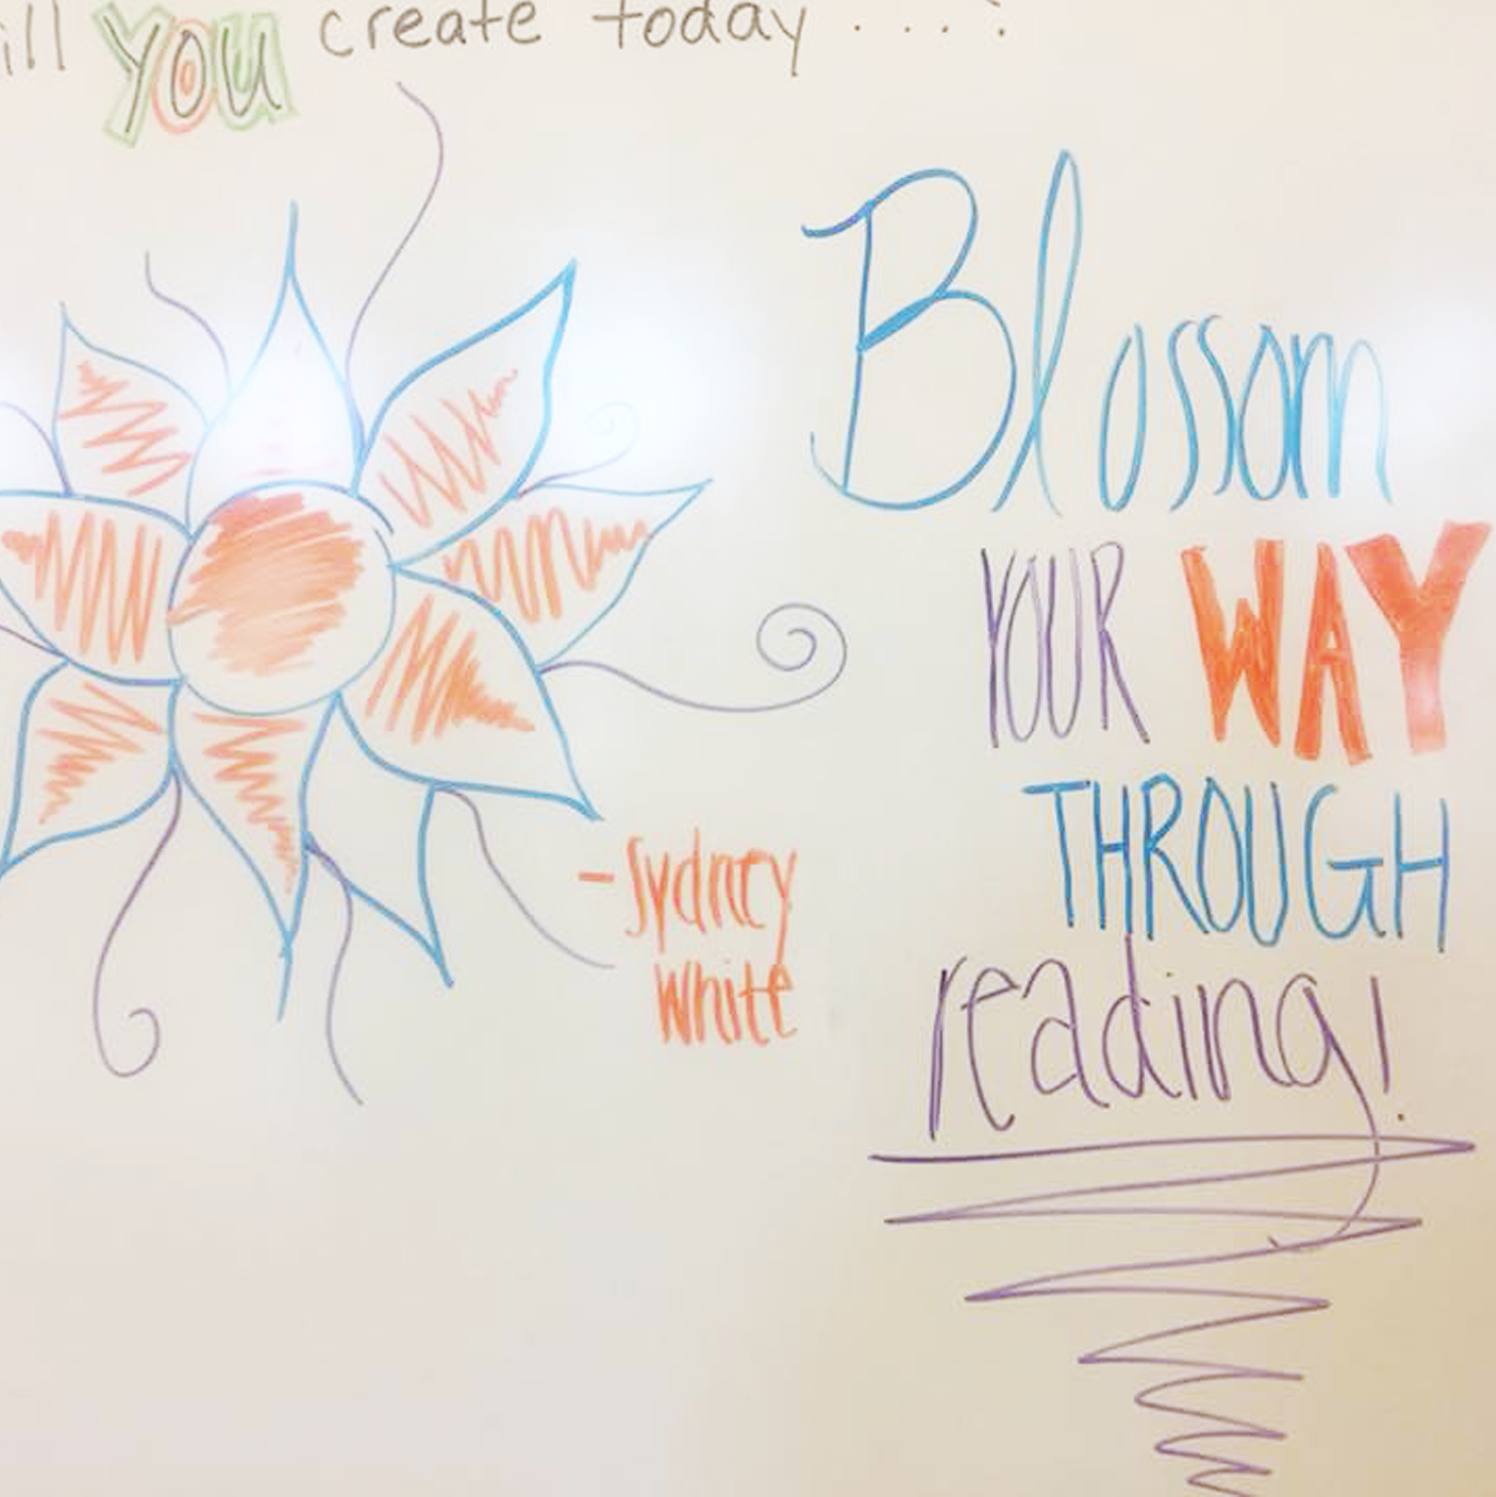 Blossom your way through reading whiteboard flower art by Sydney White